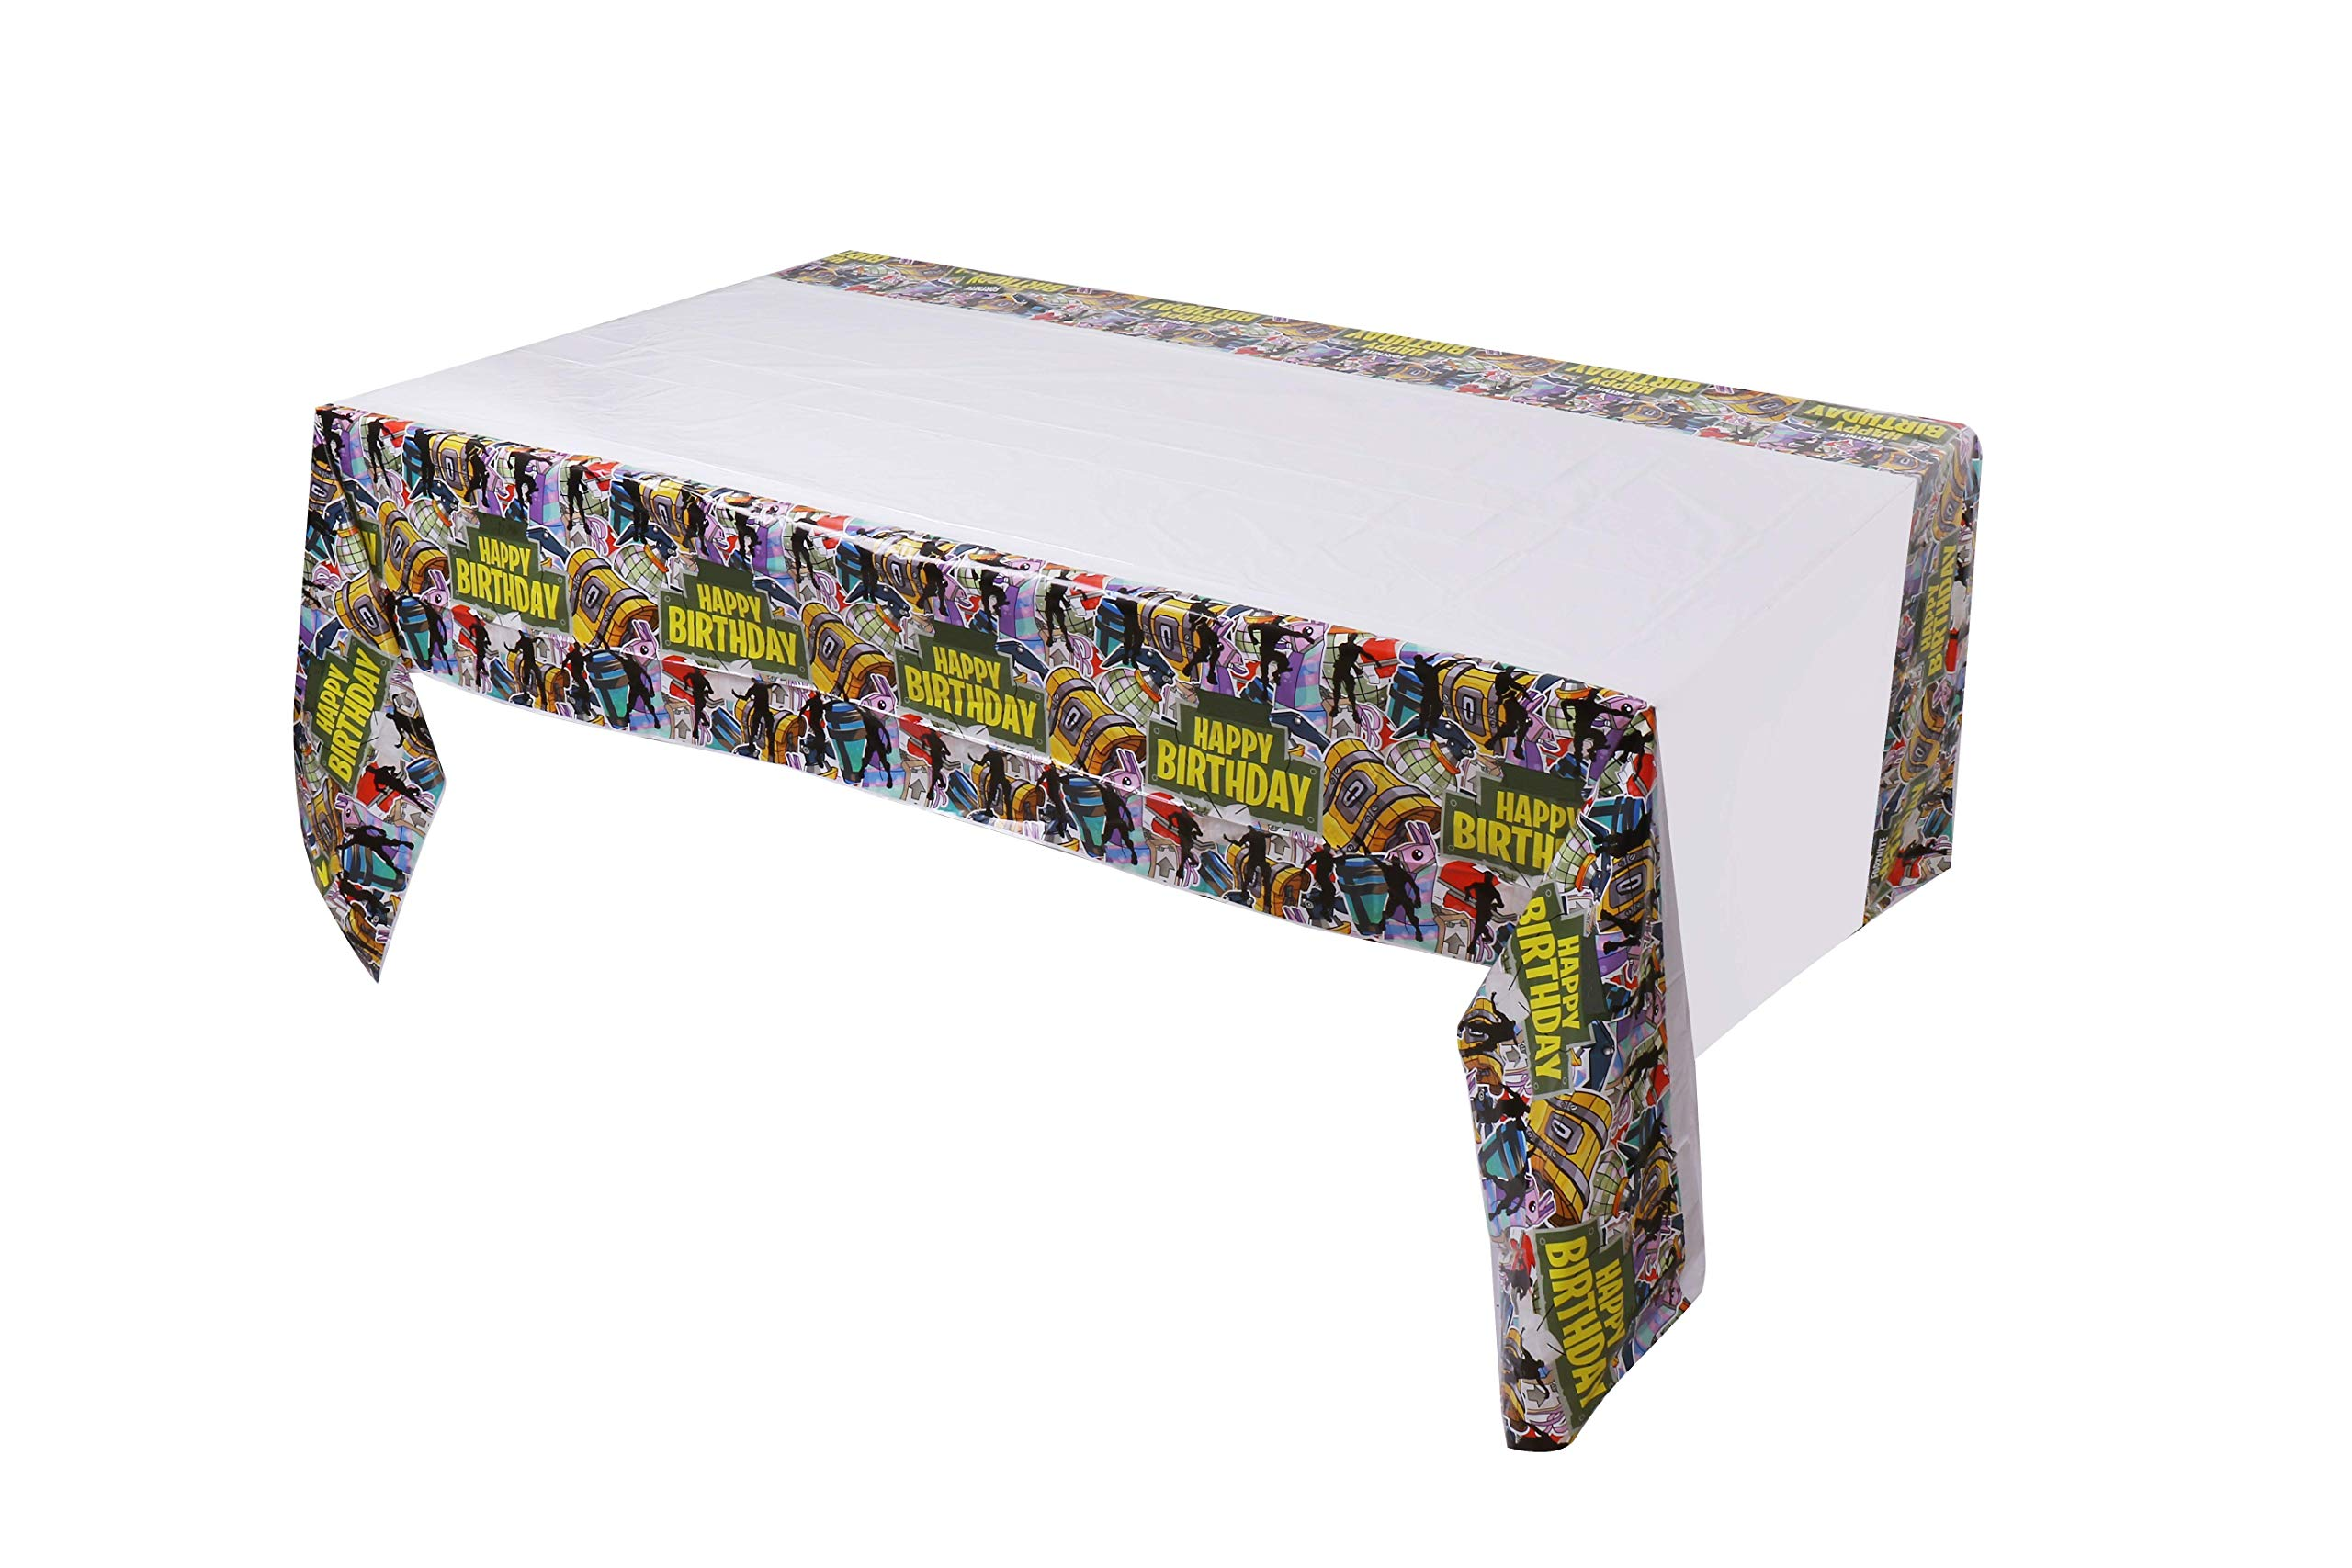 Fort Tablecloth Tablecover for Gaming Party Supplies [3 PC Set] by PartyRoad